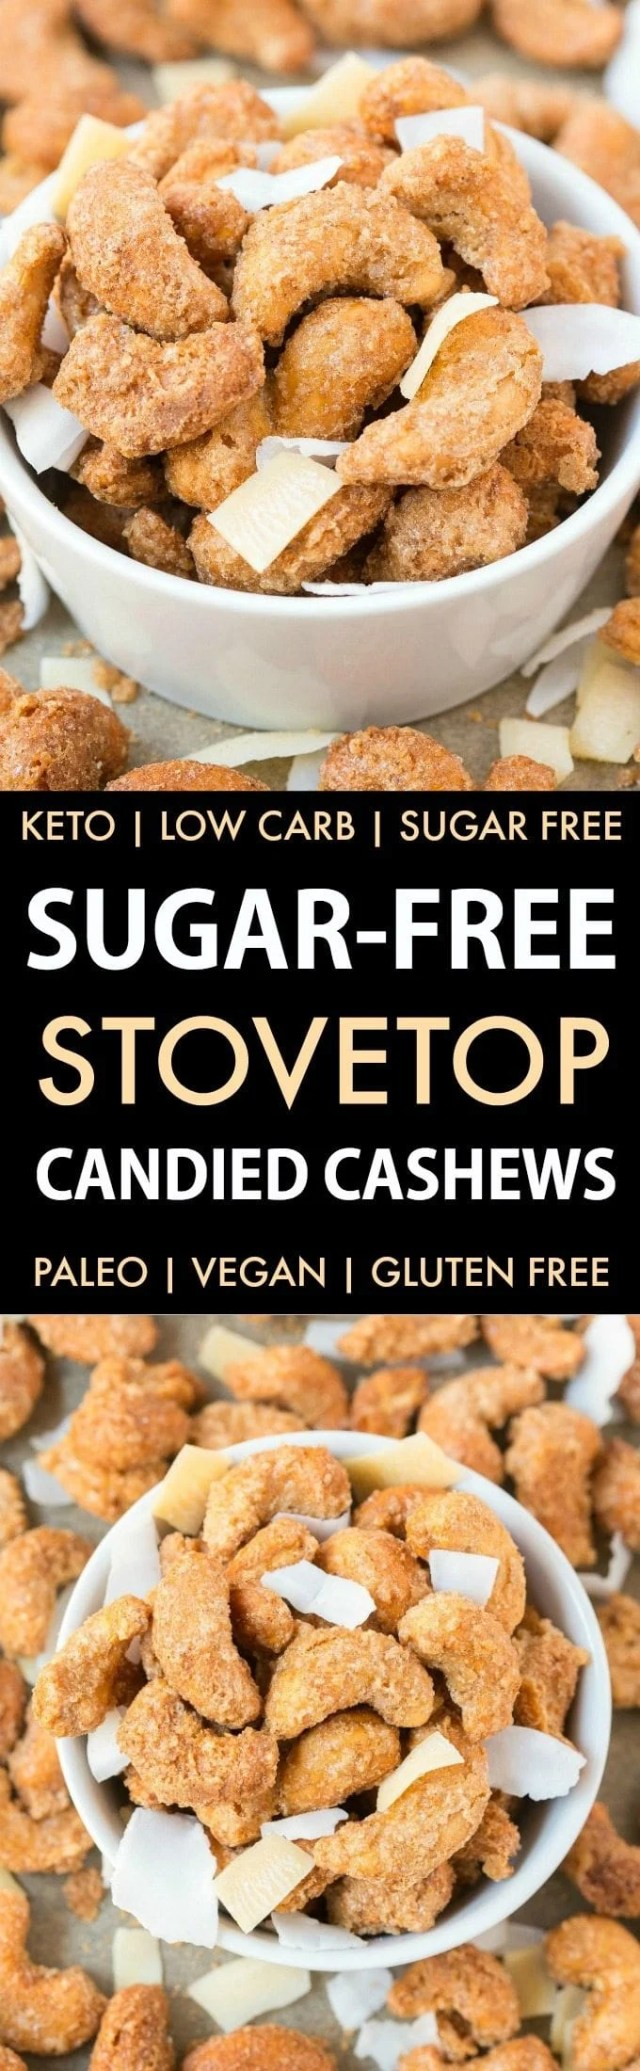 Easy Sugar-Free Candied Cashews (Keto, Low Carb, Paleo)- Stovetop made candied cashews made with zero sugar or oil- Perfect for holidays, gifts and every day guilt-free snacking! {vegan, gluten free, dairy free recipe}- #cashews #sugarfree #lowcarb #ketodessert   Recipe on thebigmansworld.com